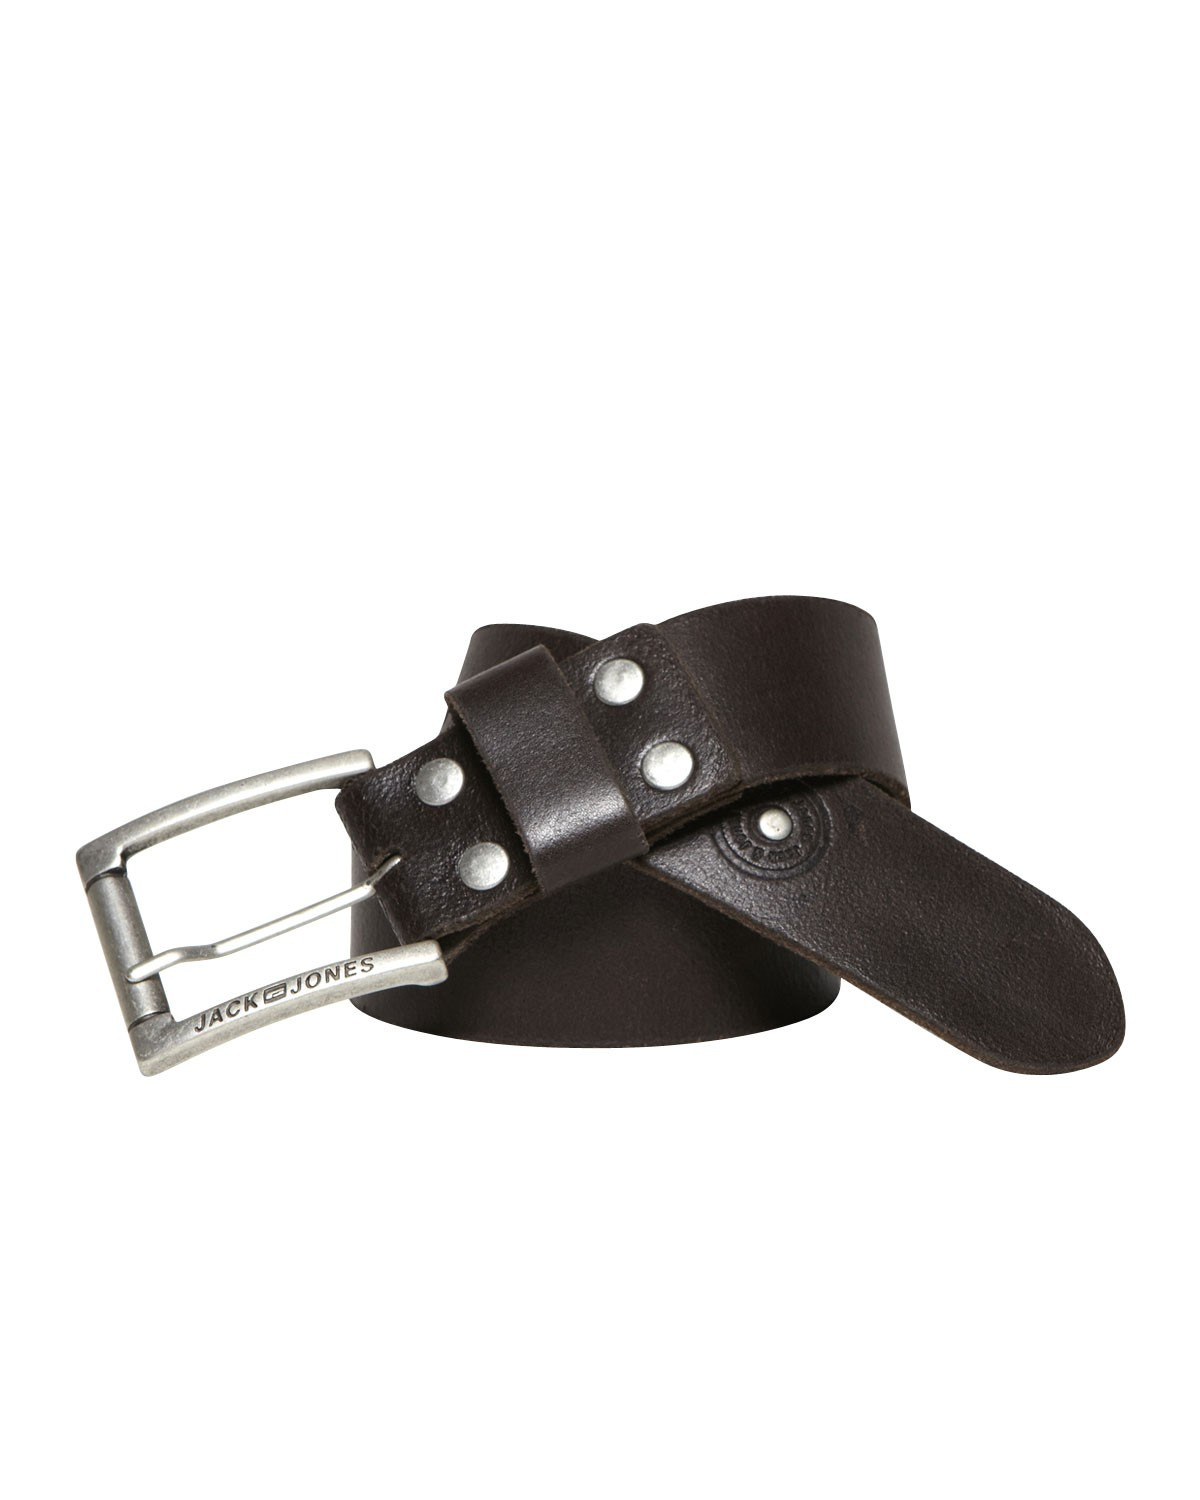 Jack-Jones-Lederguertel-braun-brown-leather-belt-Guertel-Leder-Herren-Jeans